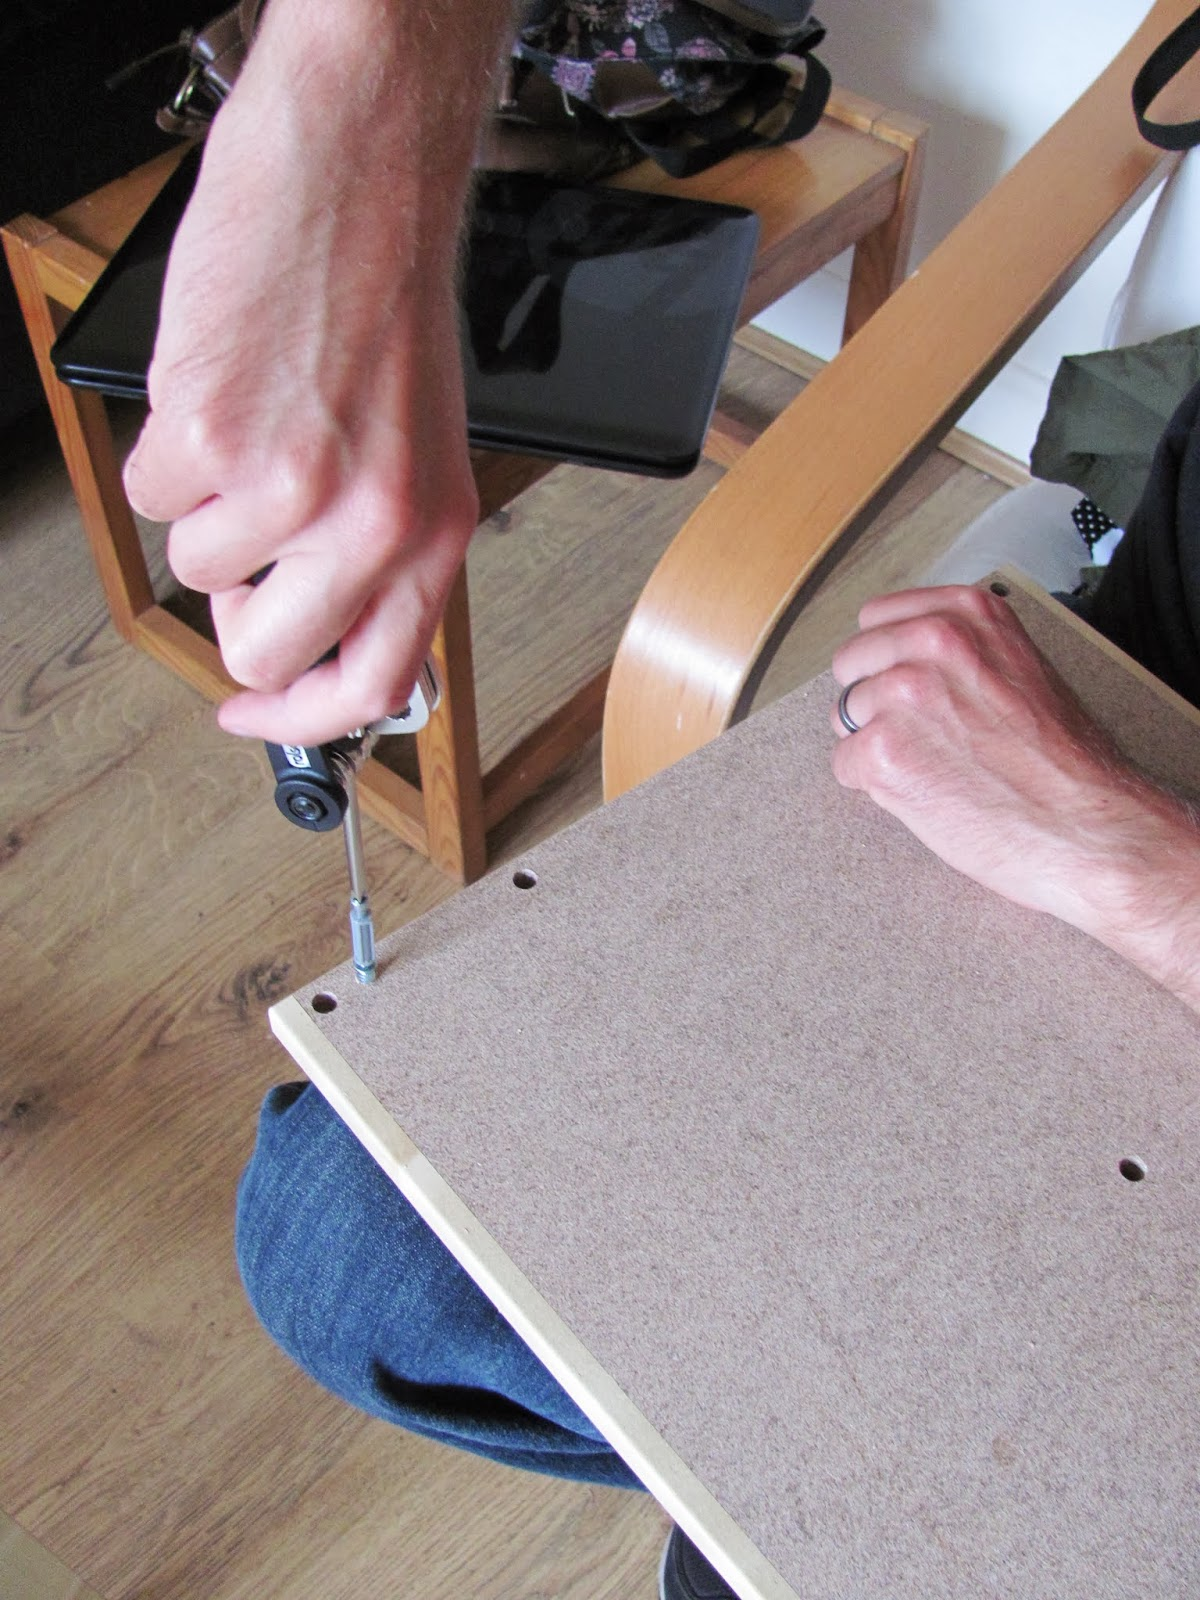 Assembling LAIVA TV stand from IKEA Dublin, Ireland with a screwdriver from a bicycle repair kit.